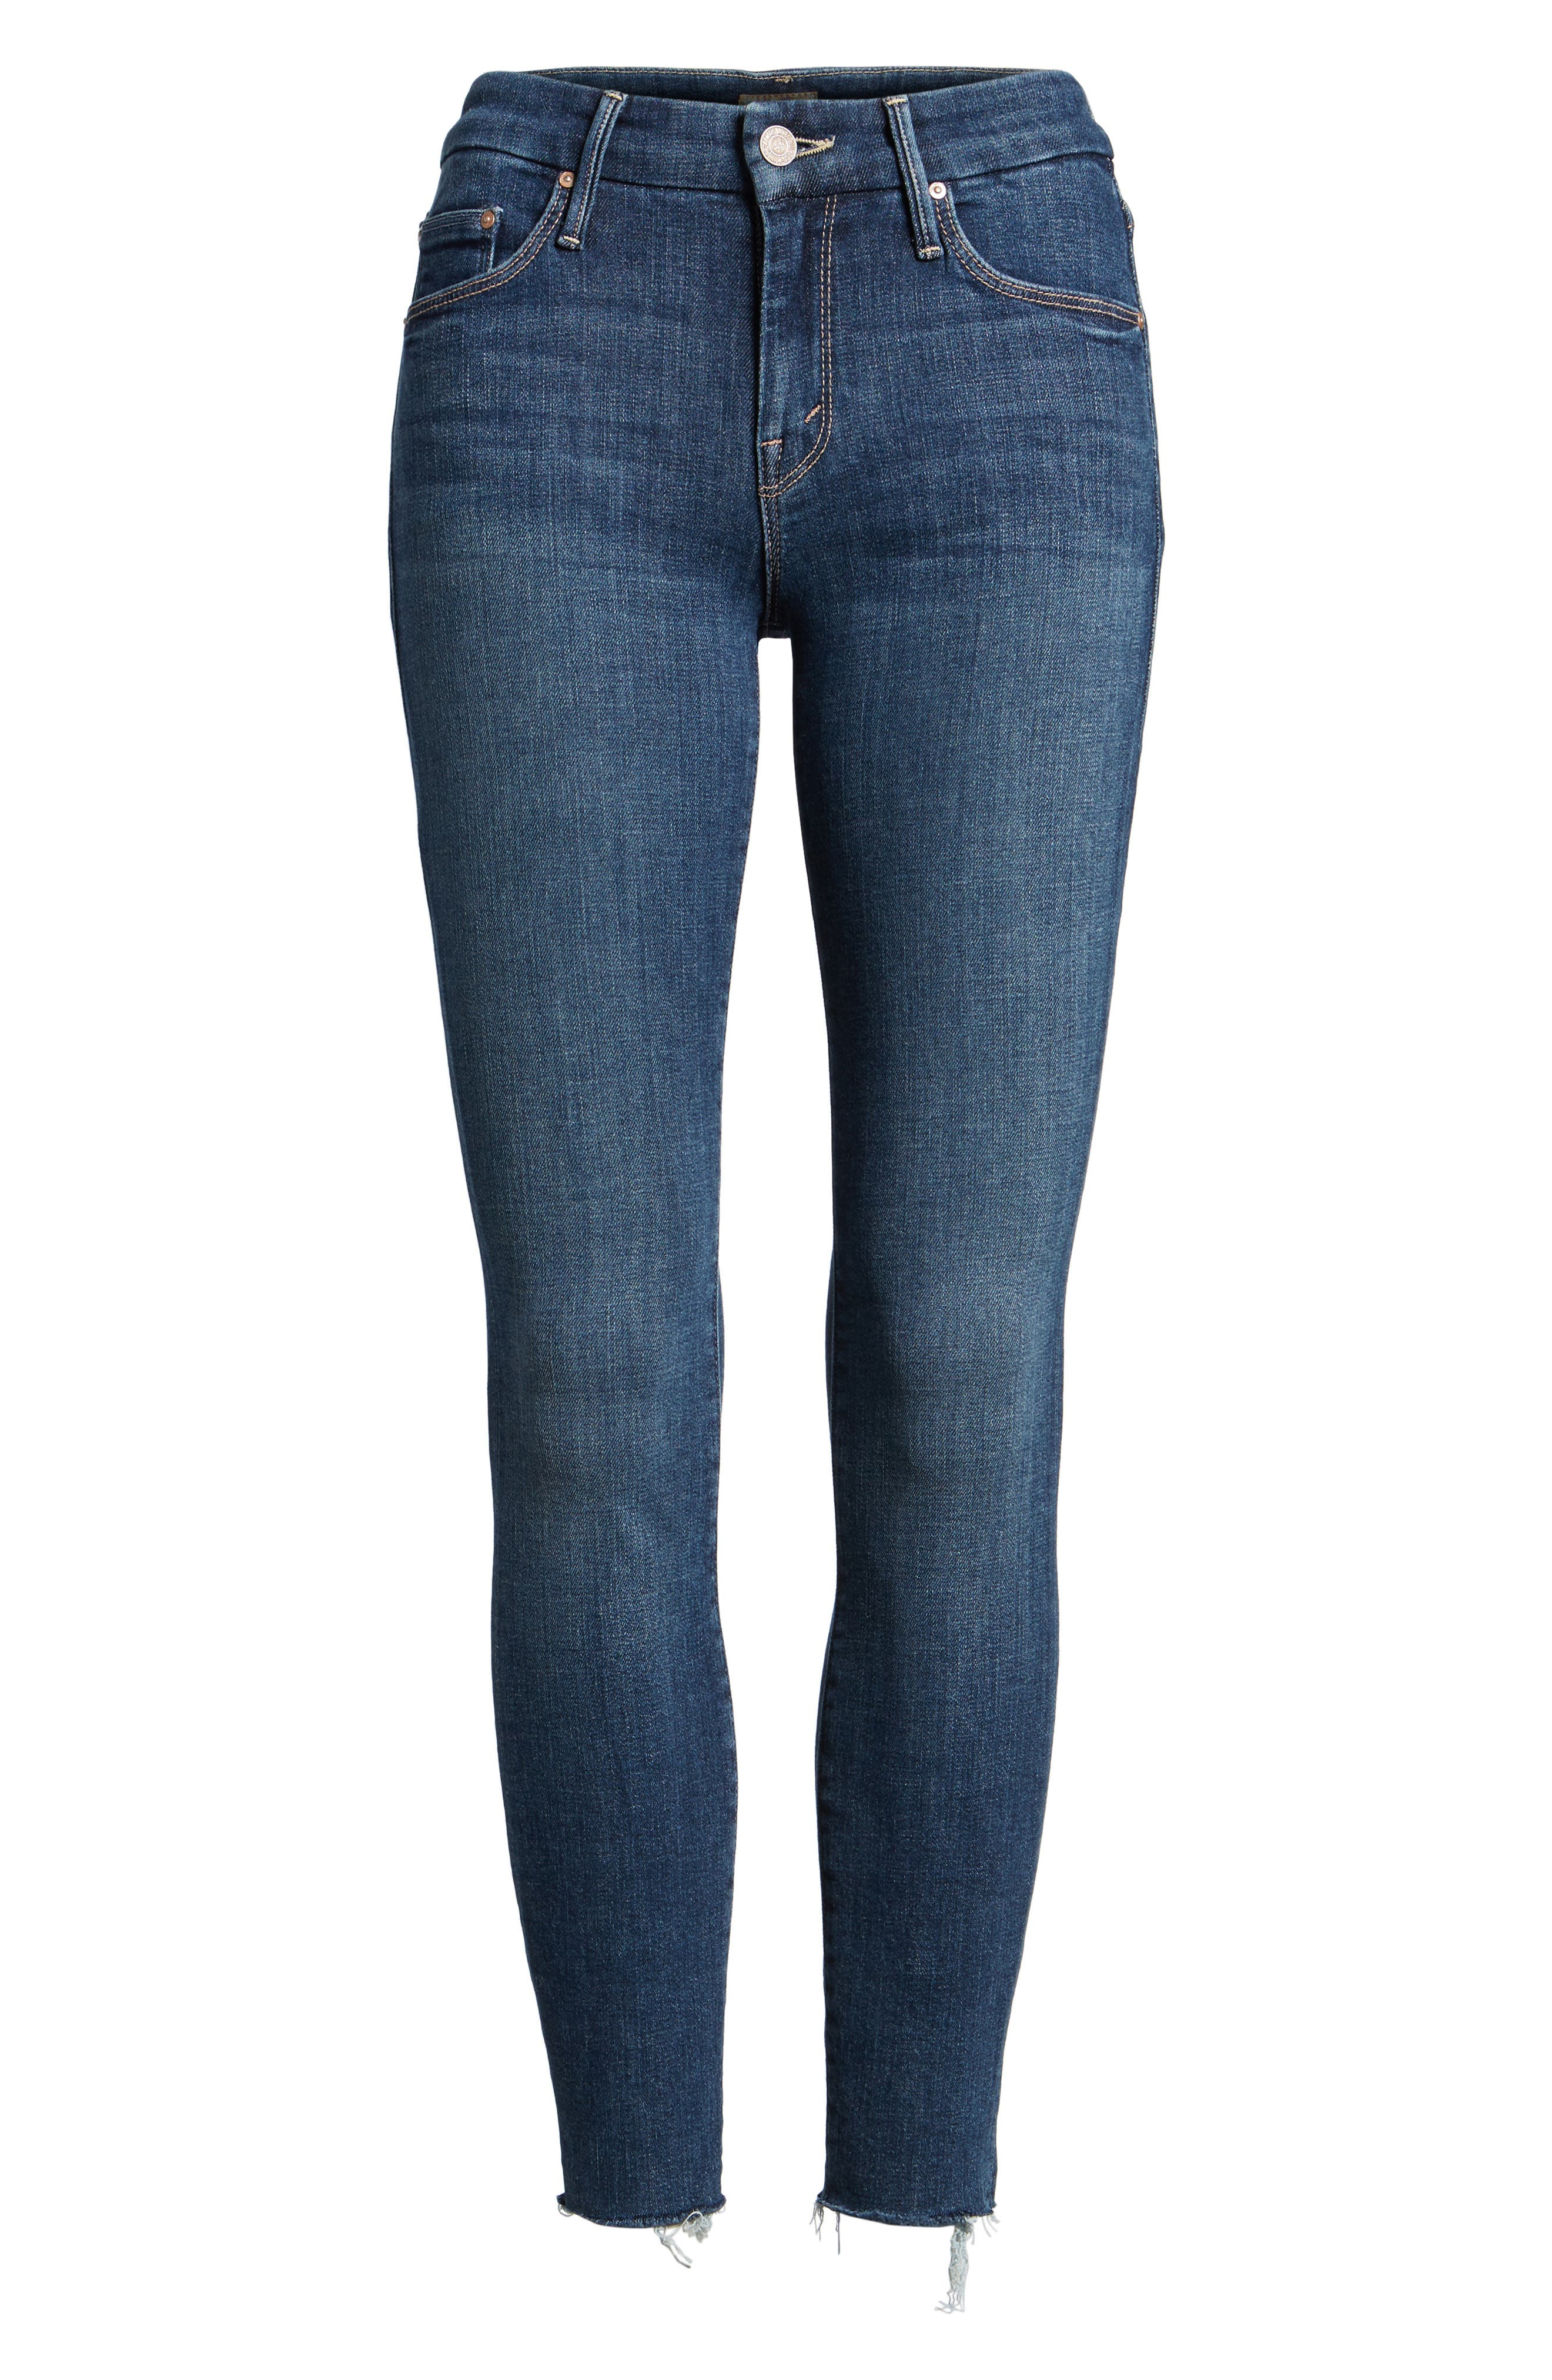 MOTHER, 'TheLooker'Frayed Ankle Jeans, Alternate thumbnail 2, color, 417